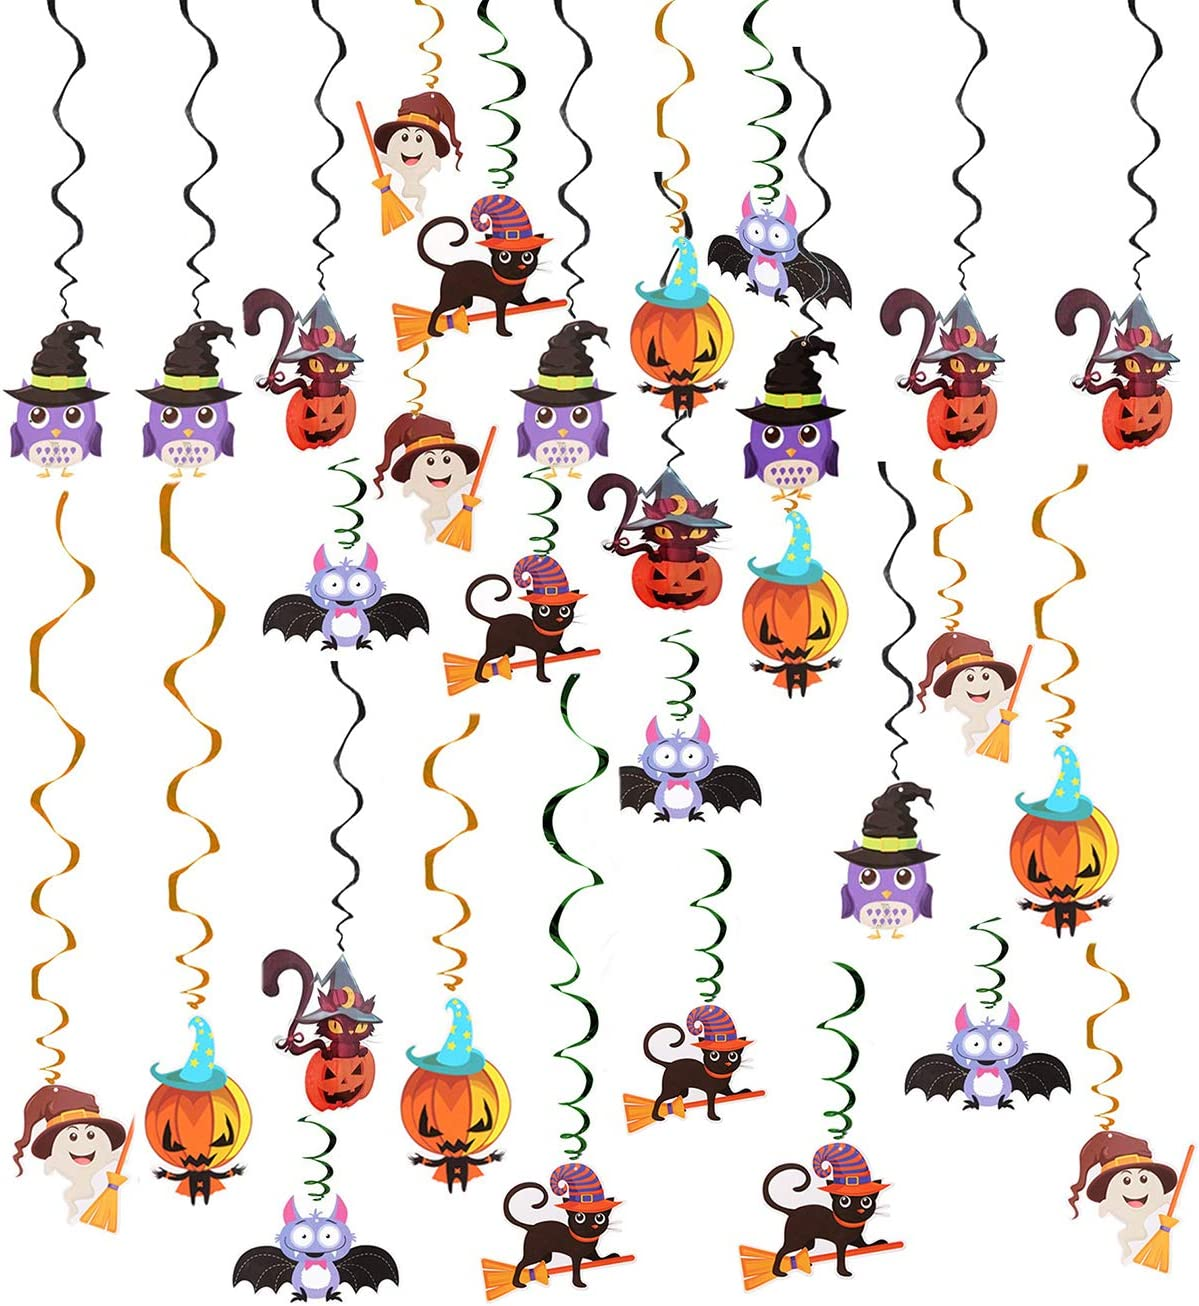 Cat Owl Cutouts 30pcs Halloween Celling Hanging Swirl Yard Party Decorations Whirls Streamers Party Favor Supplies Included Bats Fashionclubs Halloween Hanging Swirl Decorations Pumpkin Ghost Witch